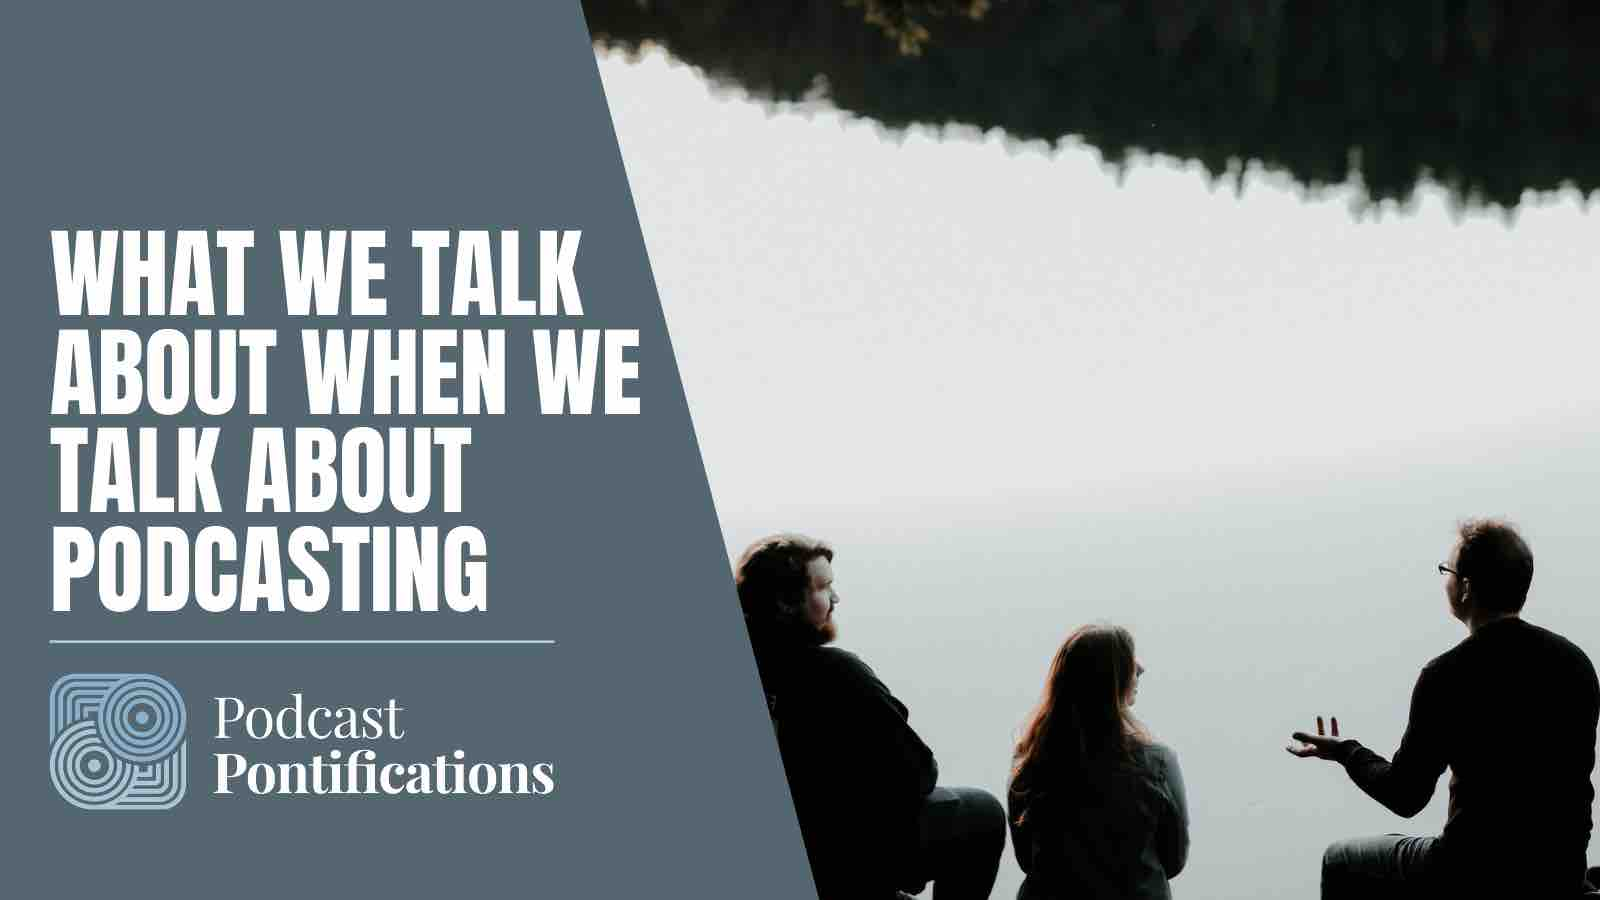 What We Talk About When We Talk About Podcasting